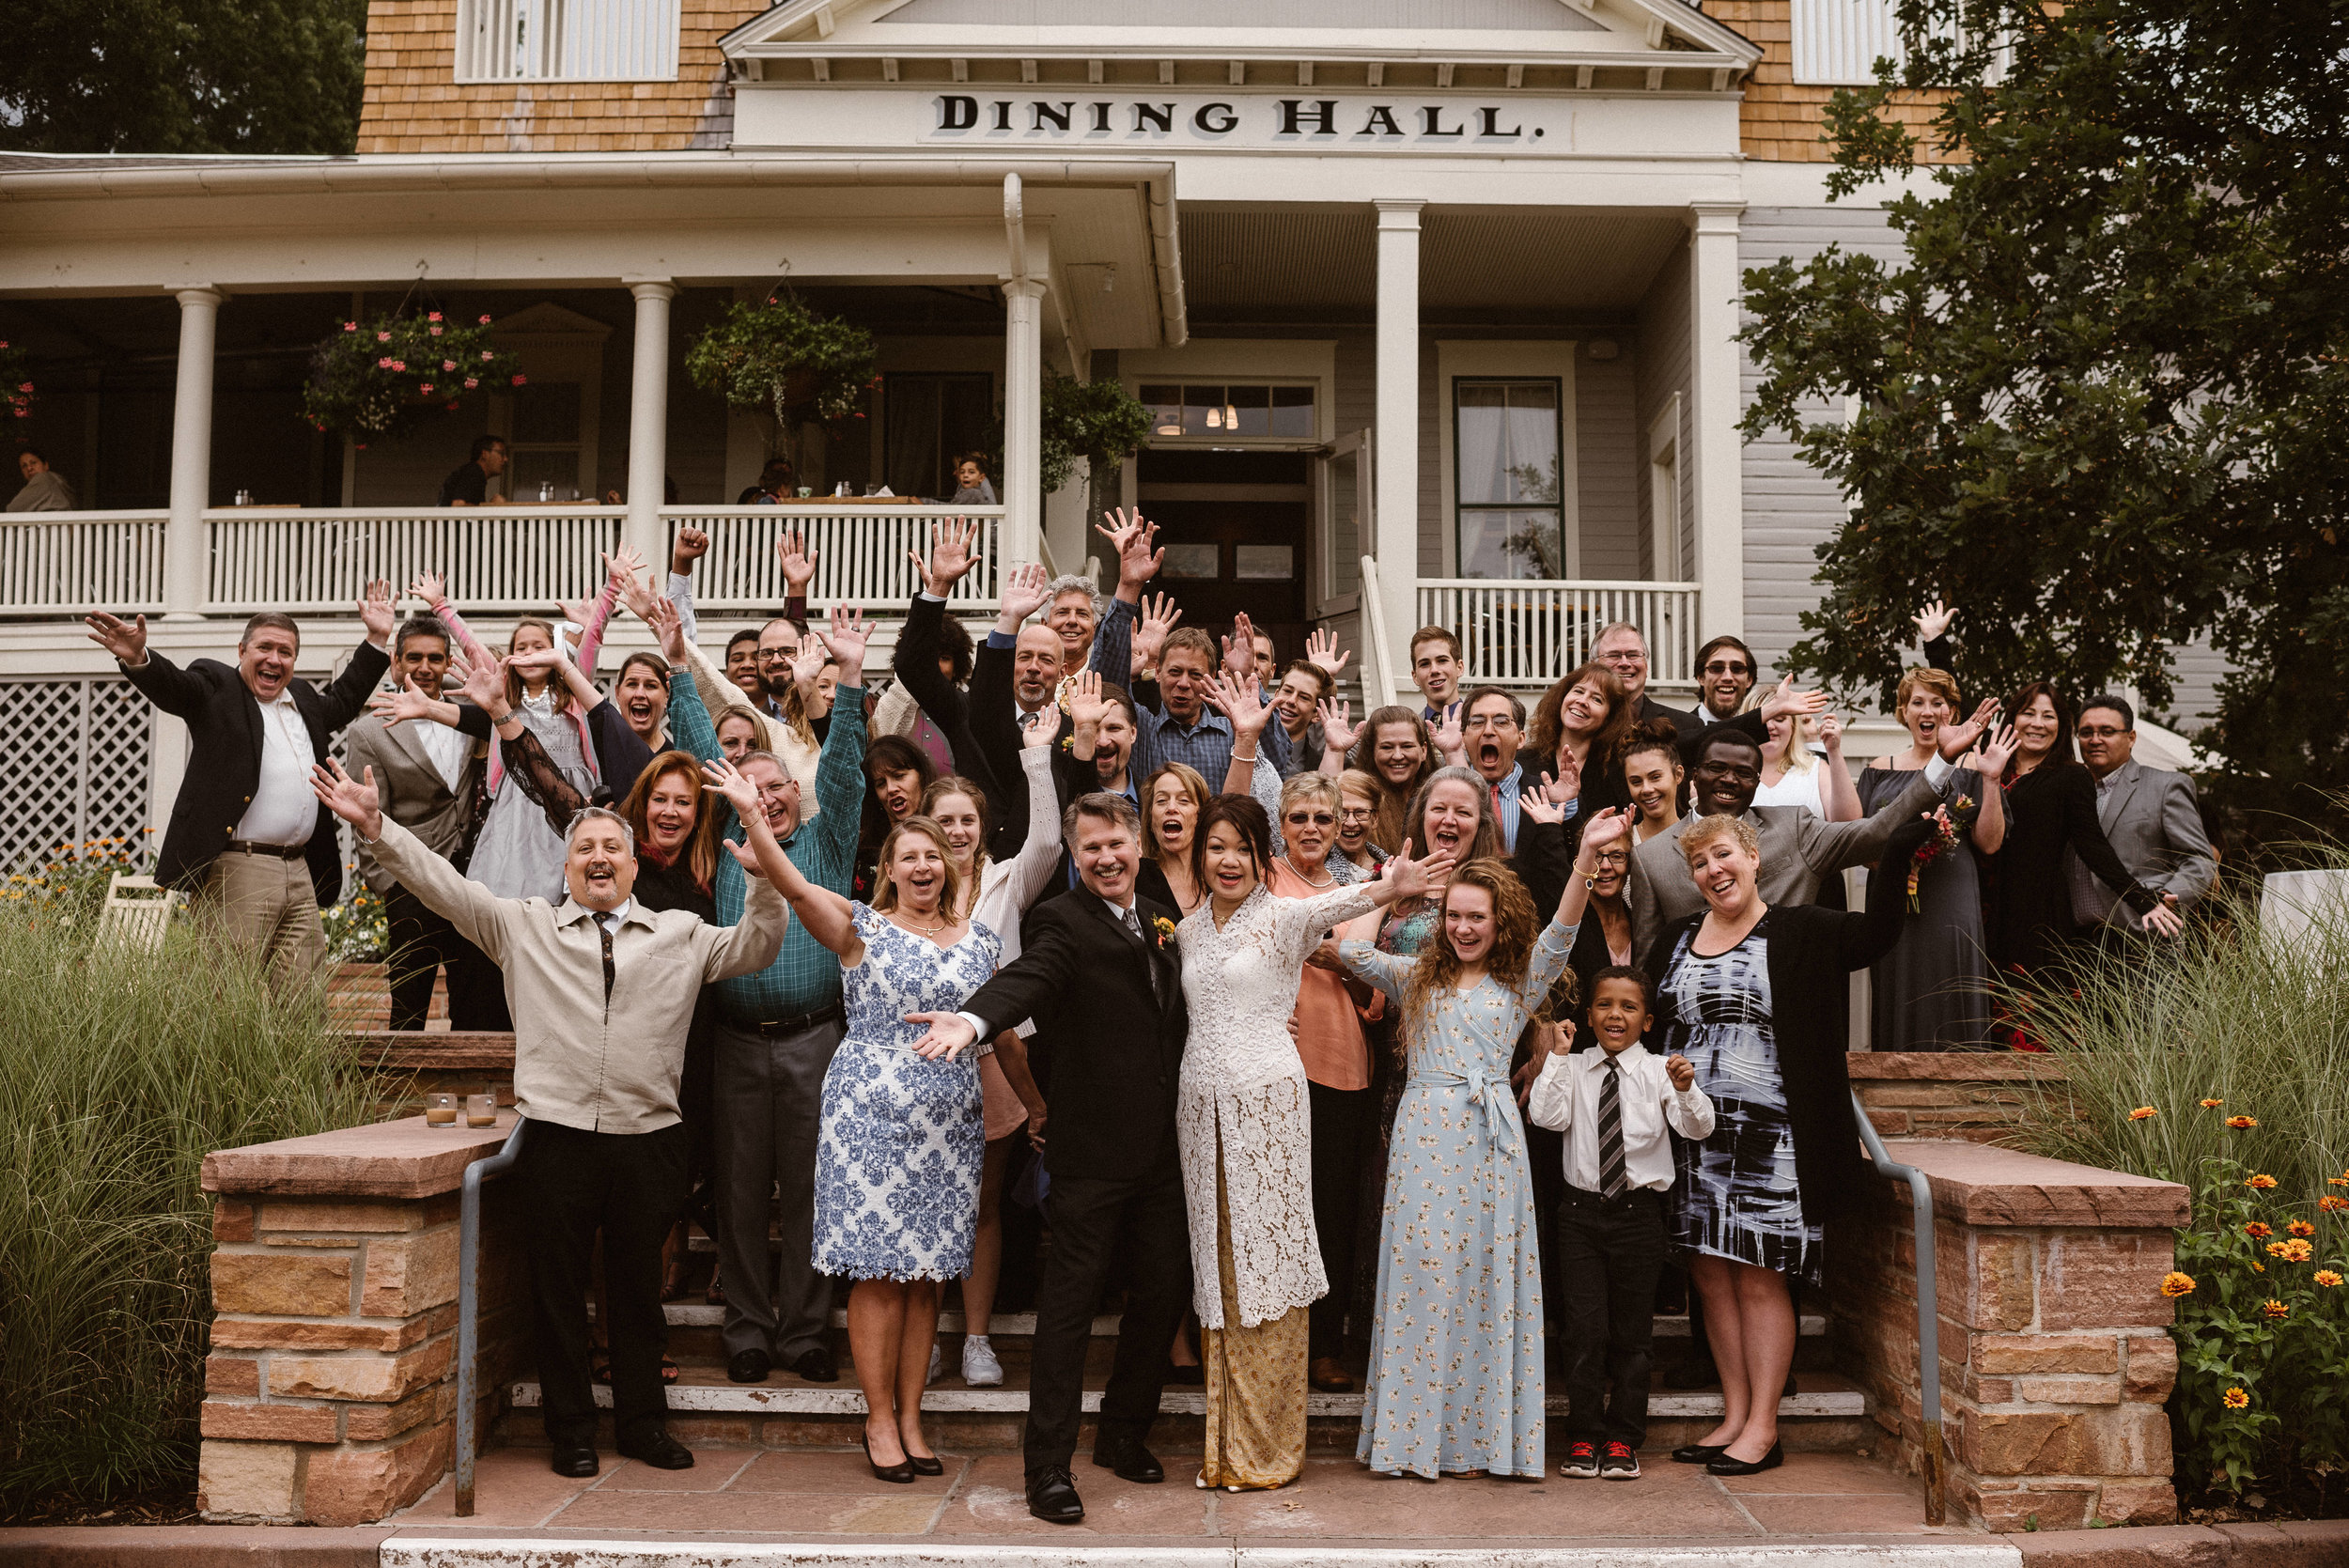 Bridal Party at Chautauqua Dining Hall in Boulder, Colorado